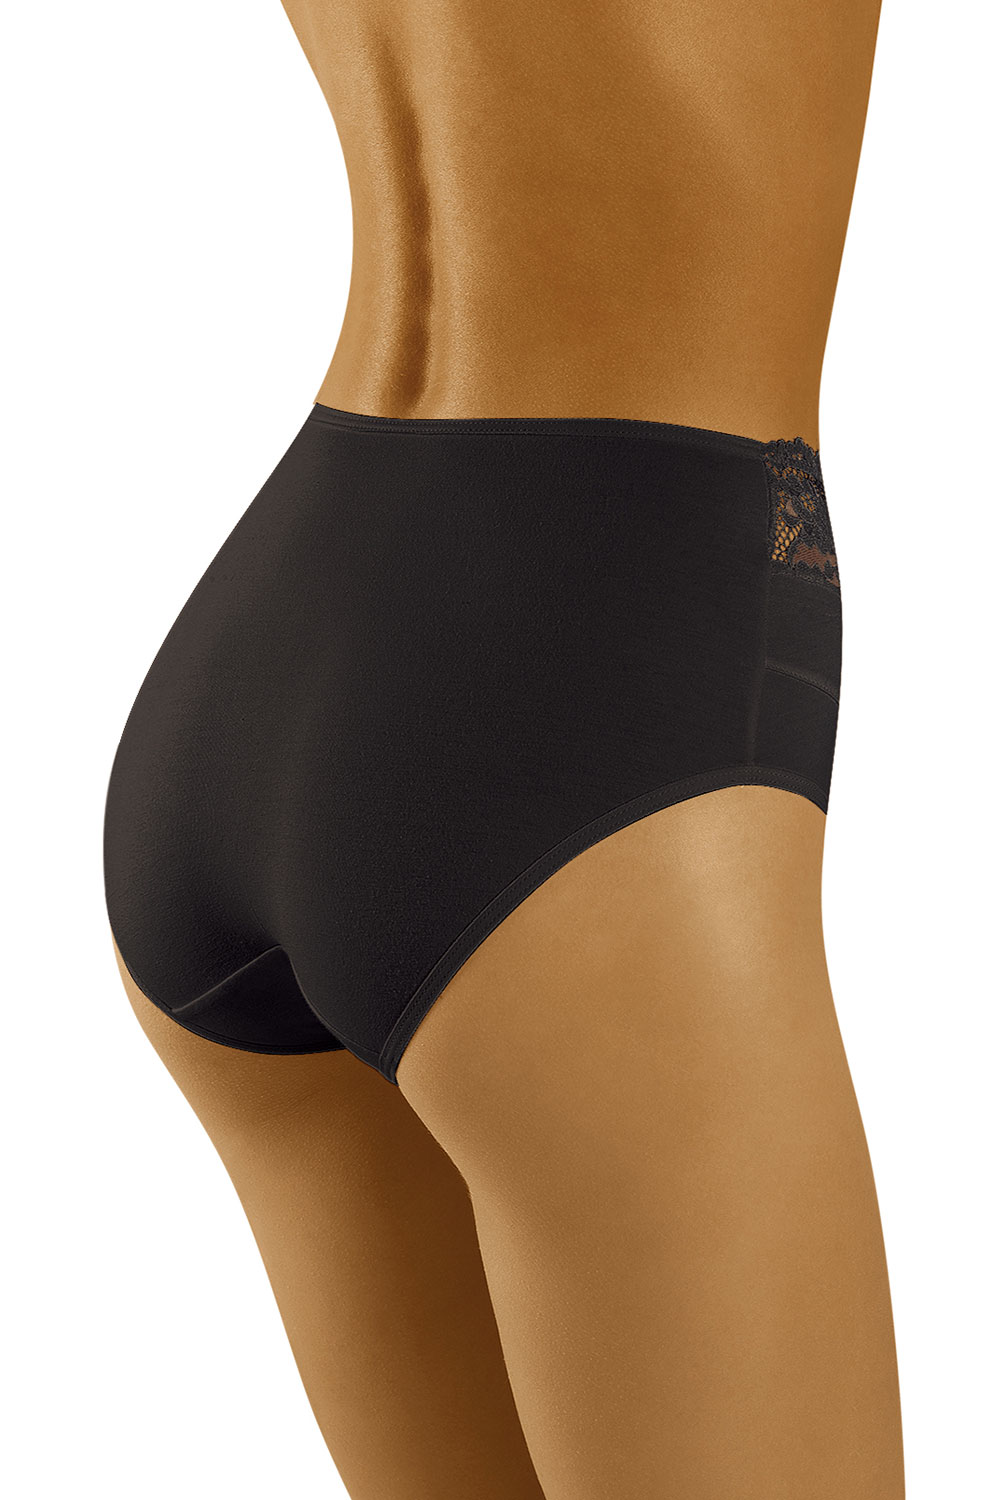 Wolbar Cotton Ladies Briefs High Waisted Classic Womens Knickers WB415